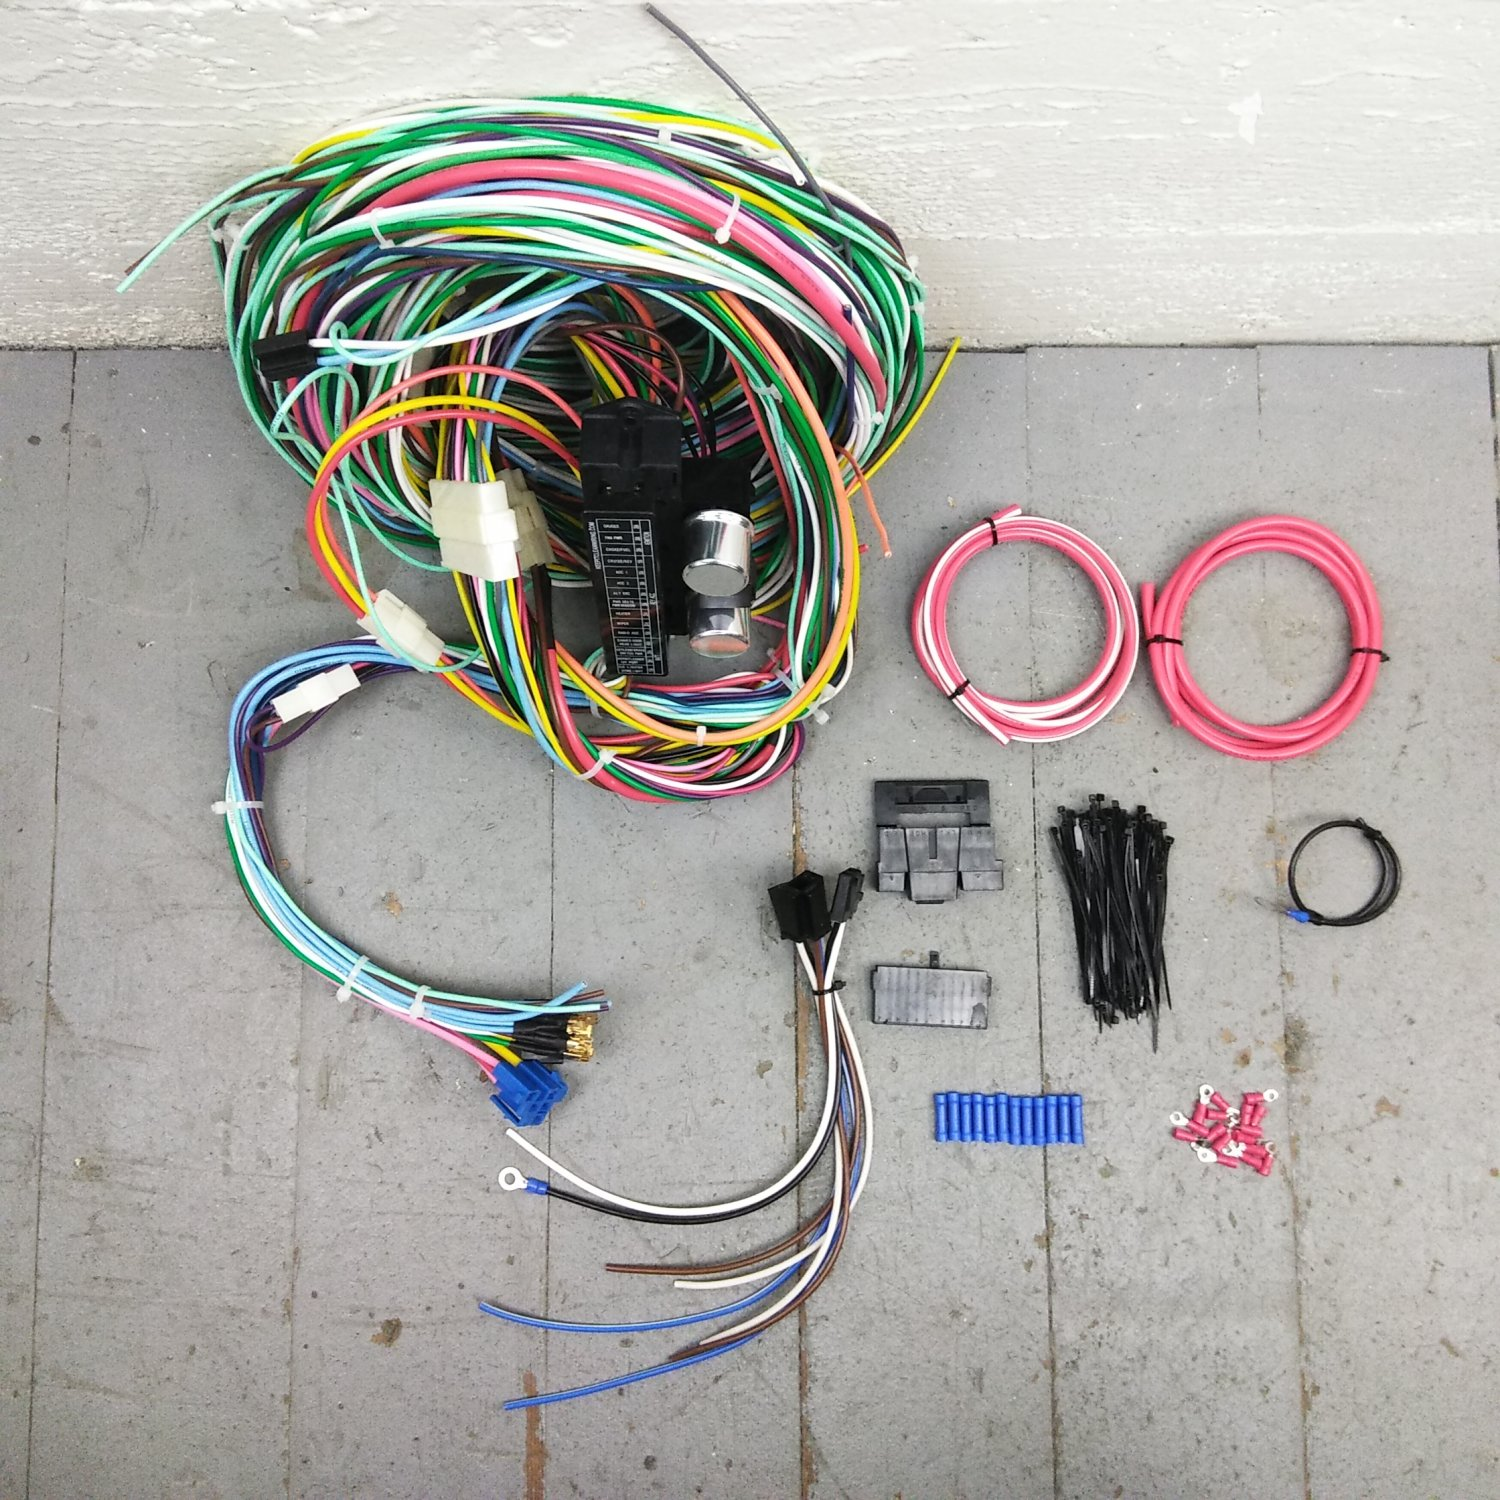 hight resolution of 1967 1968 mercury cougar wire harness upgrade kit fits painless mercury cougar pro touring on 68 cougar turn signal switch wiring